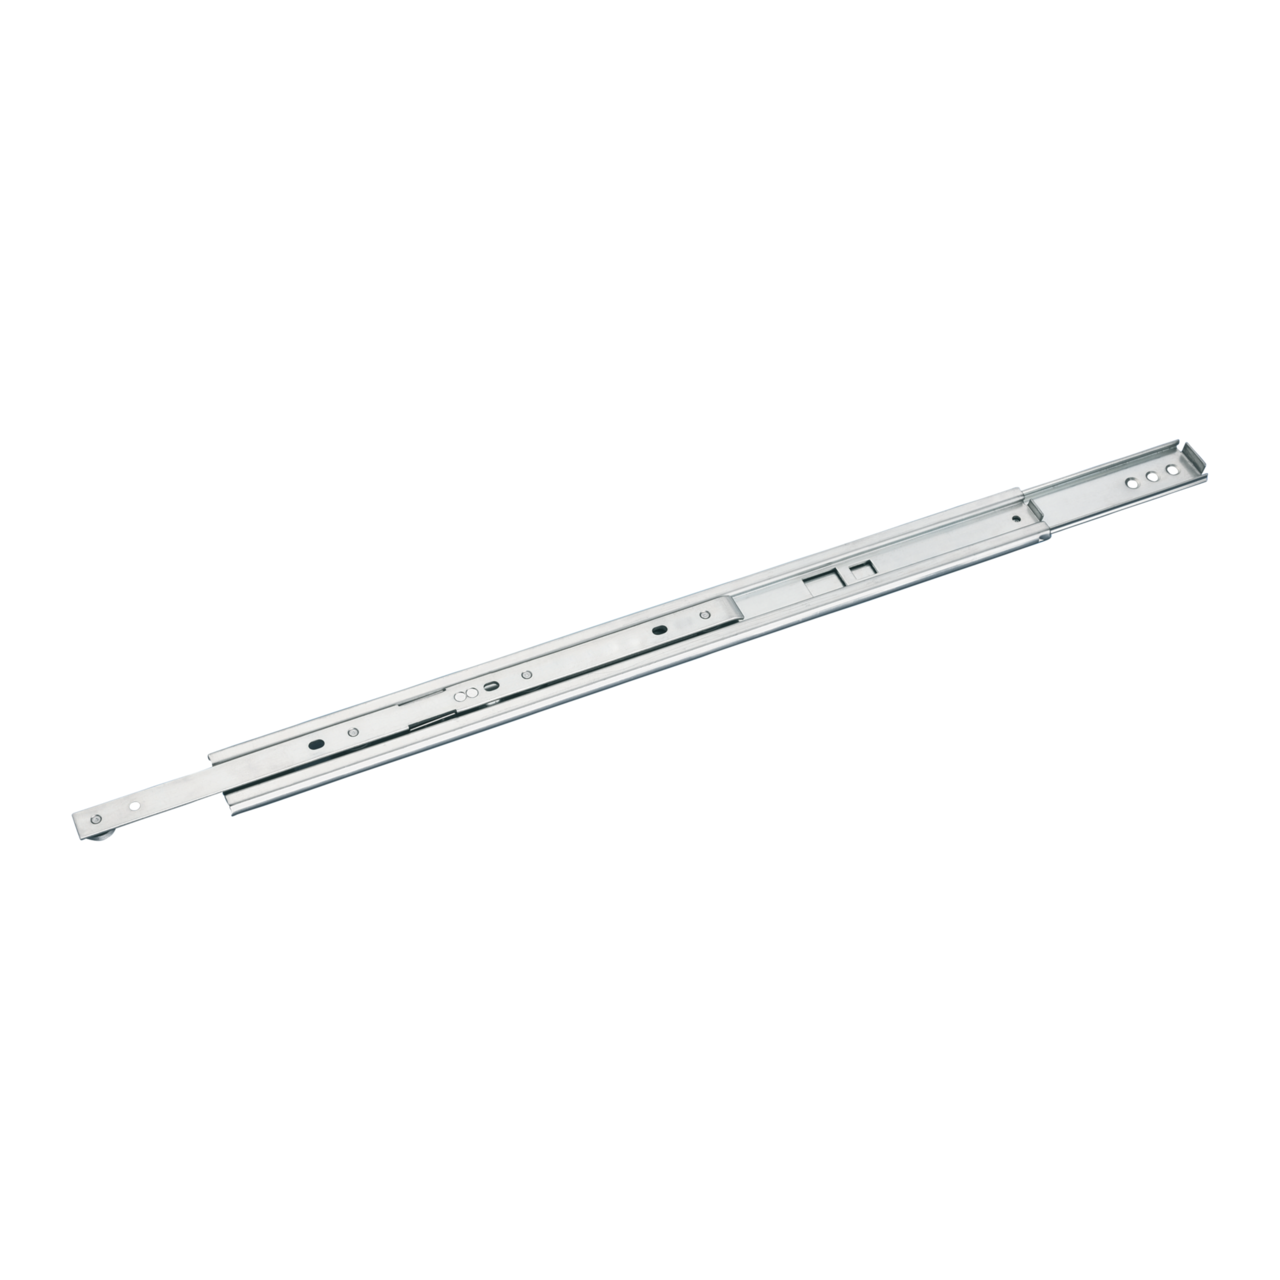 Image for Universal telescopic slide, 1 U, 23 - 39 kg from Schroff - Asia Pacific